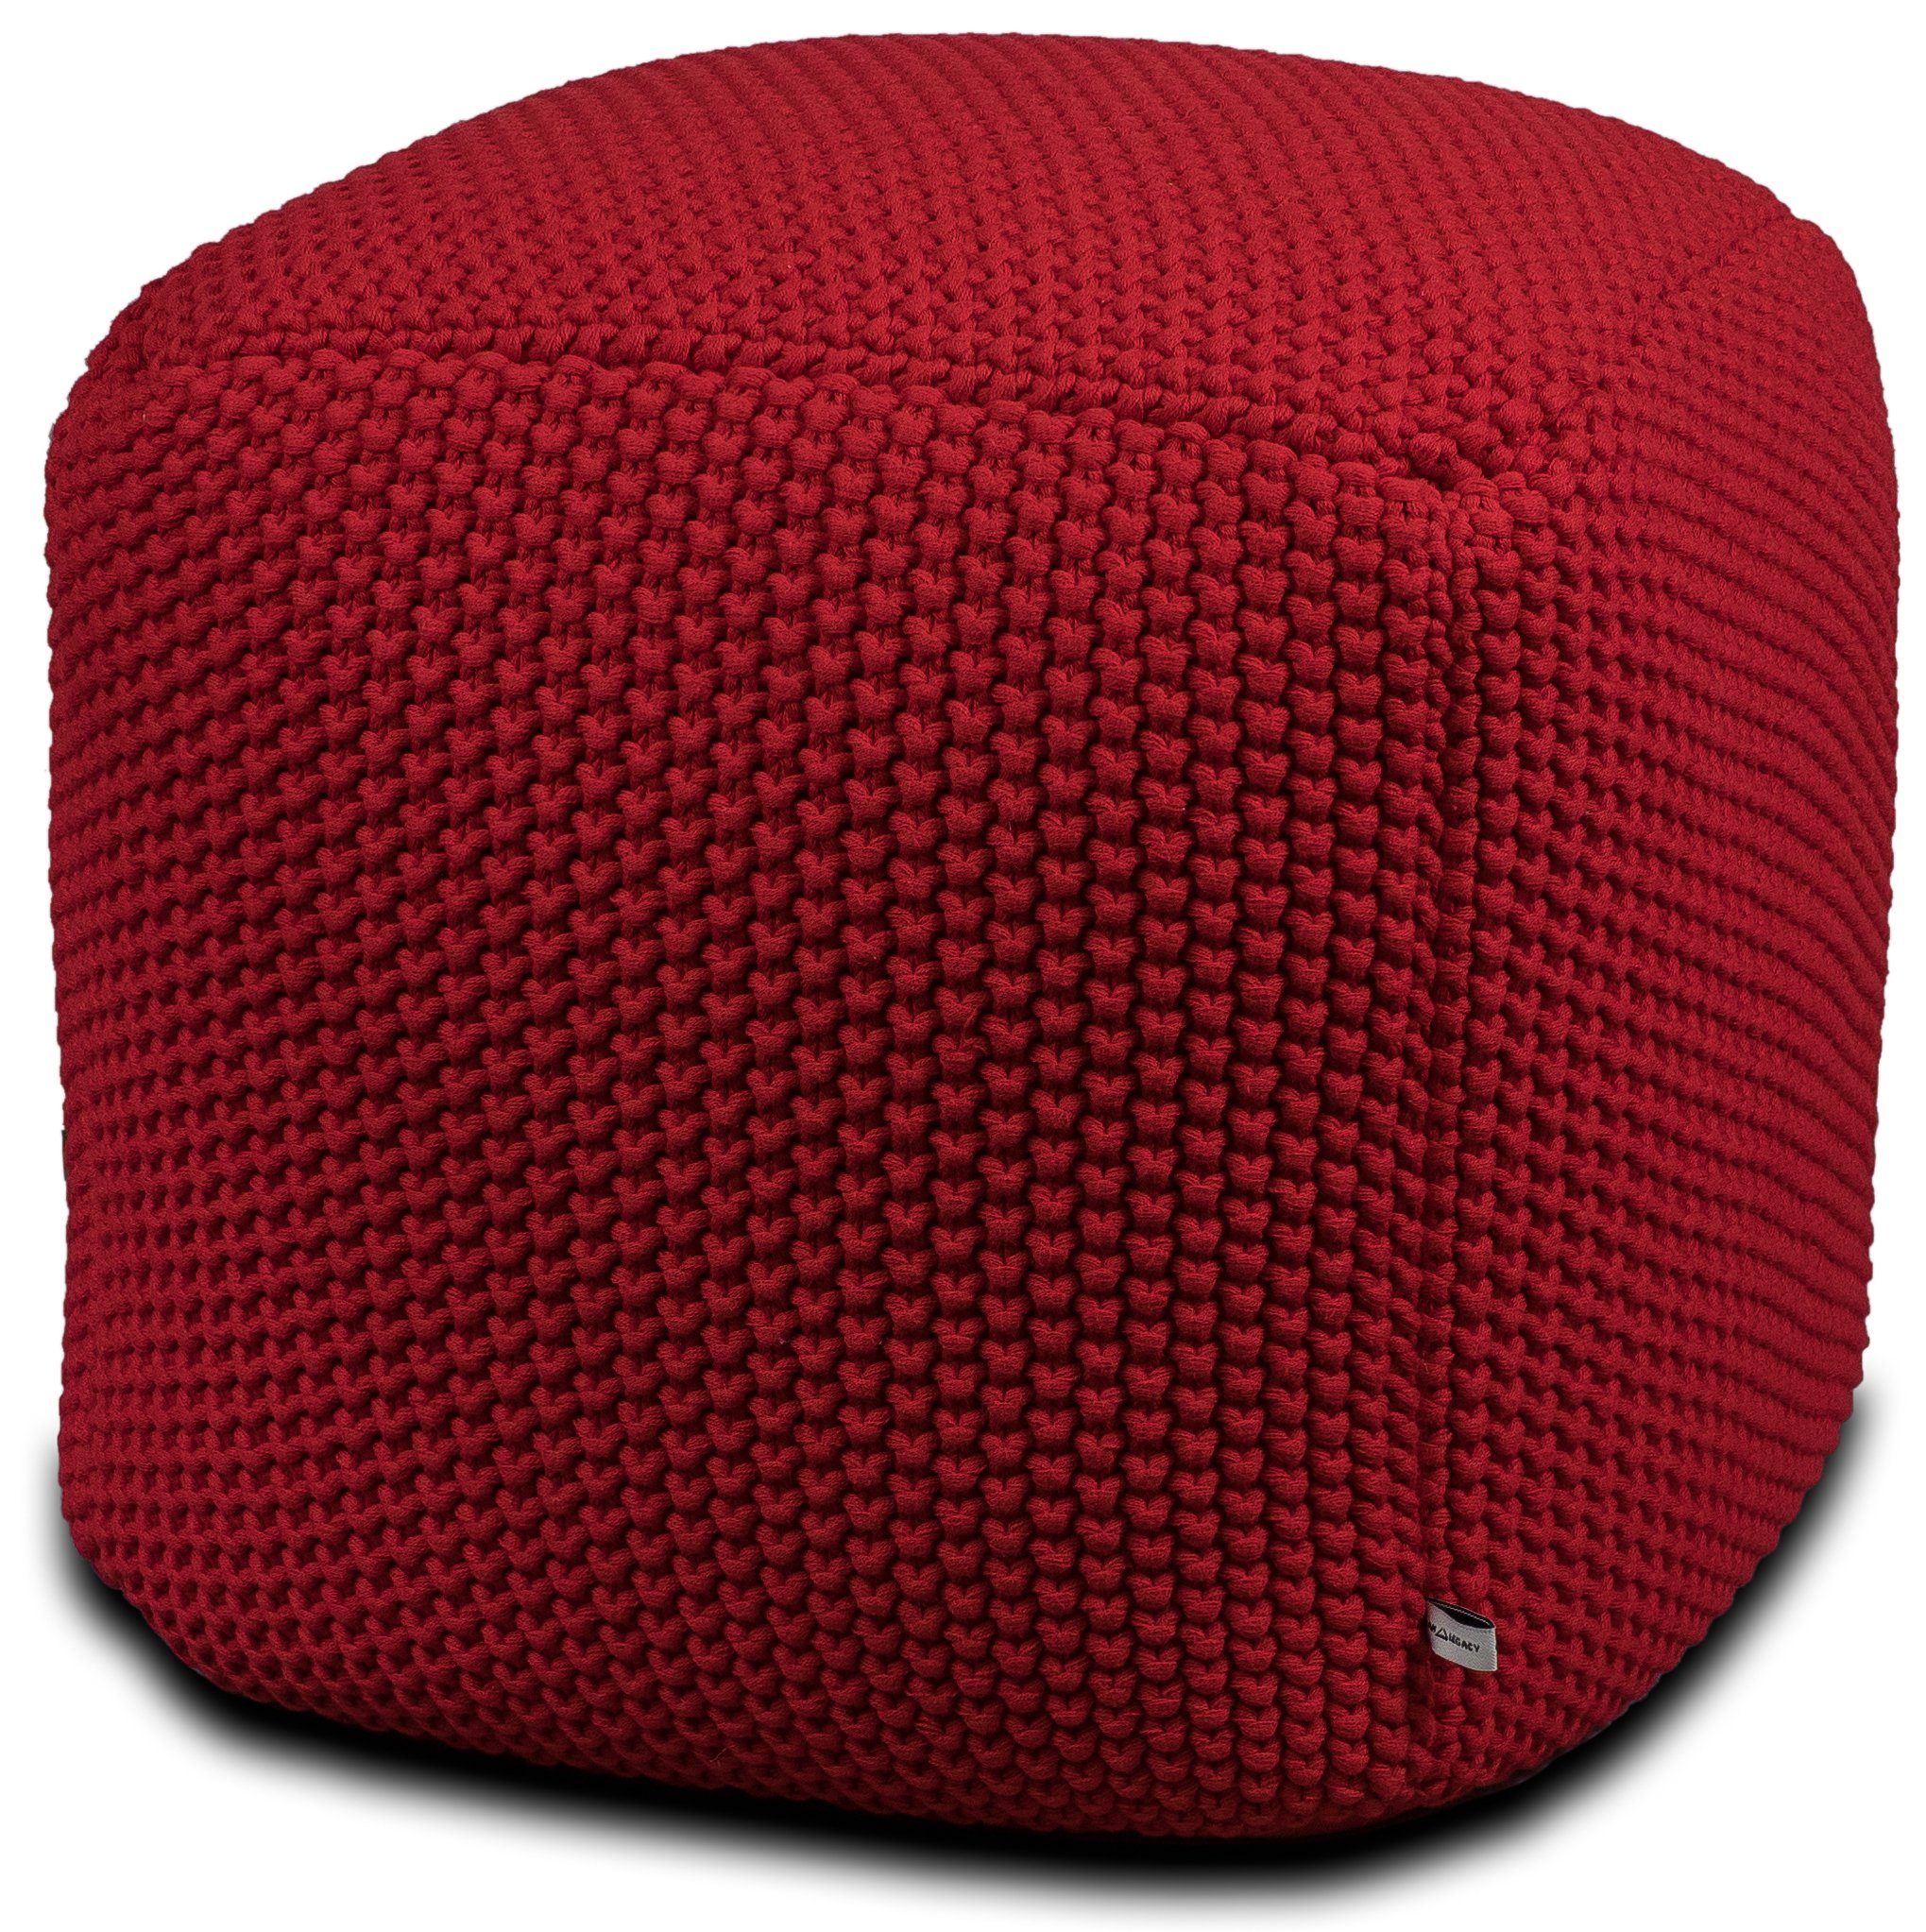 Urban Legacy Crocheted/Knitted Ottoman Pouf (100% Cotton, Handmade, Square, Beautiful, Soft and Lightweight, Available in Four Colors) | by (Red) by Urban Legacy